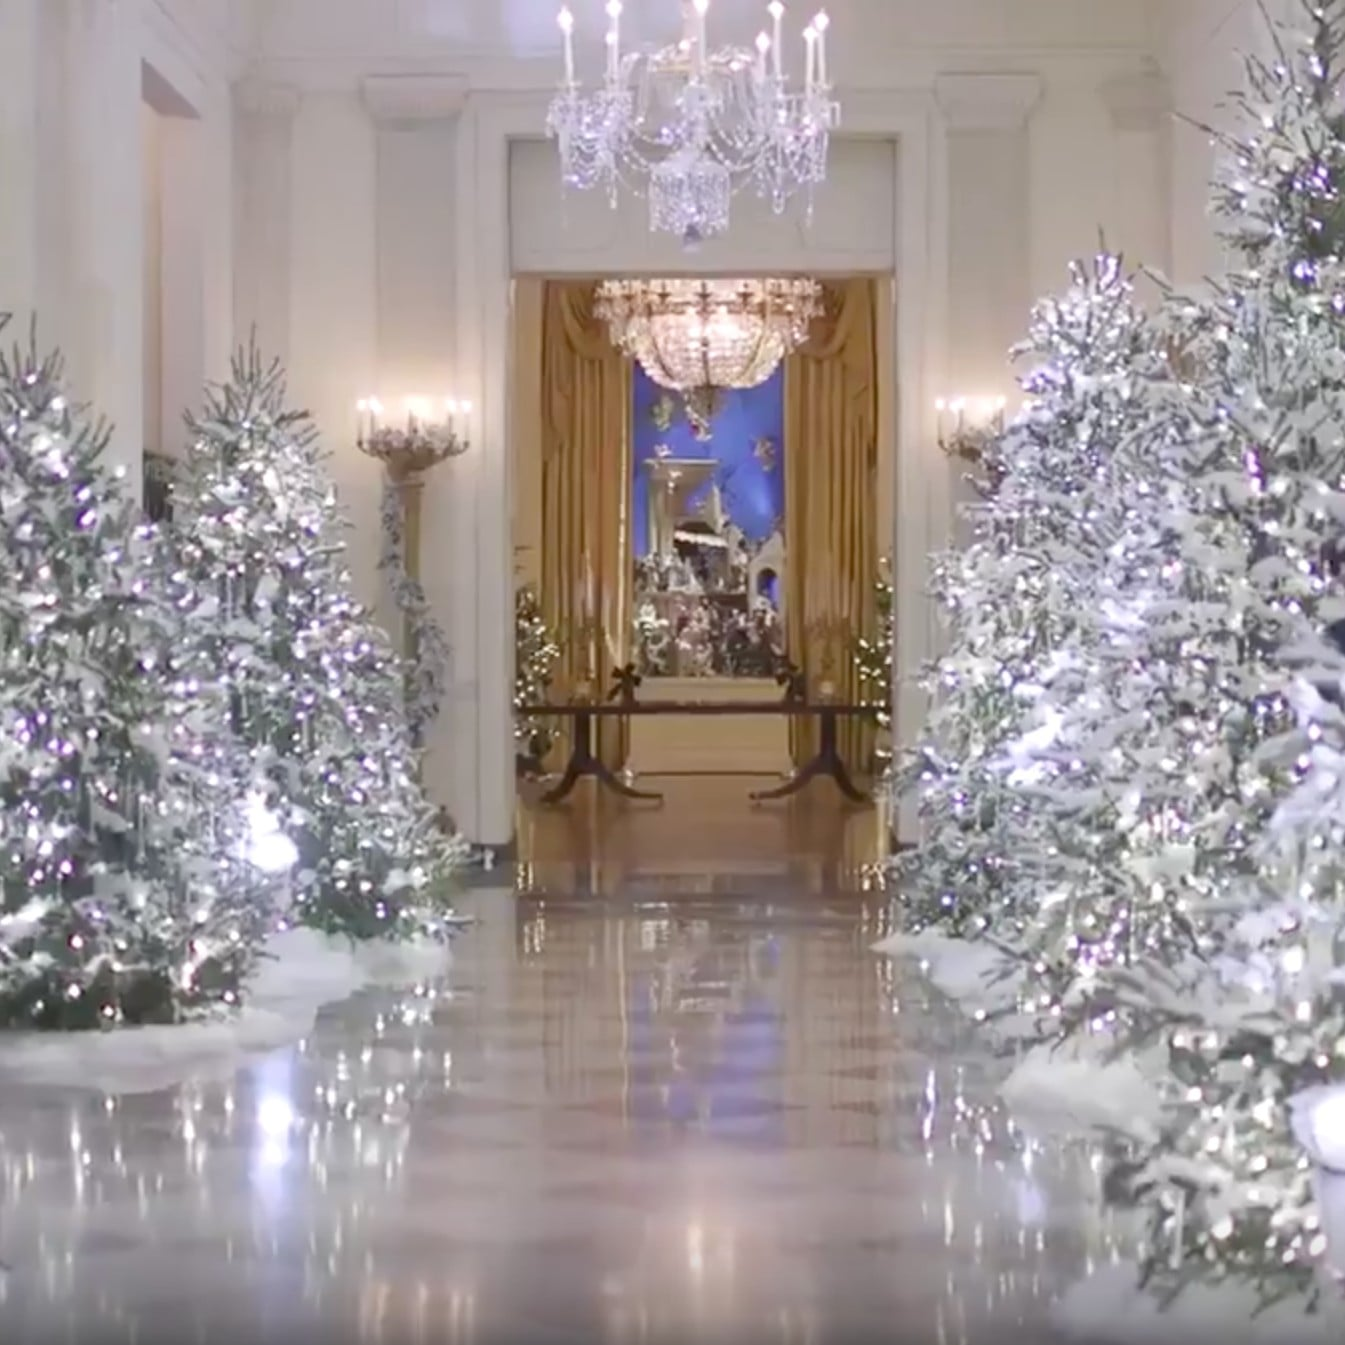 white house holiday decorations 2017 popsugar family - Christmas Decorations For 2017